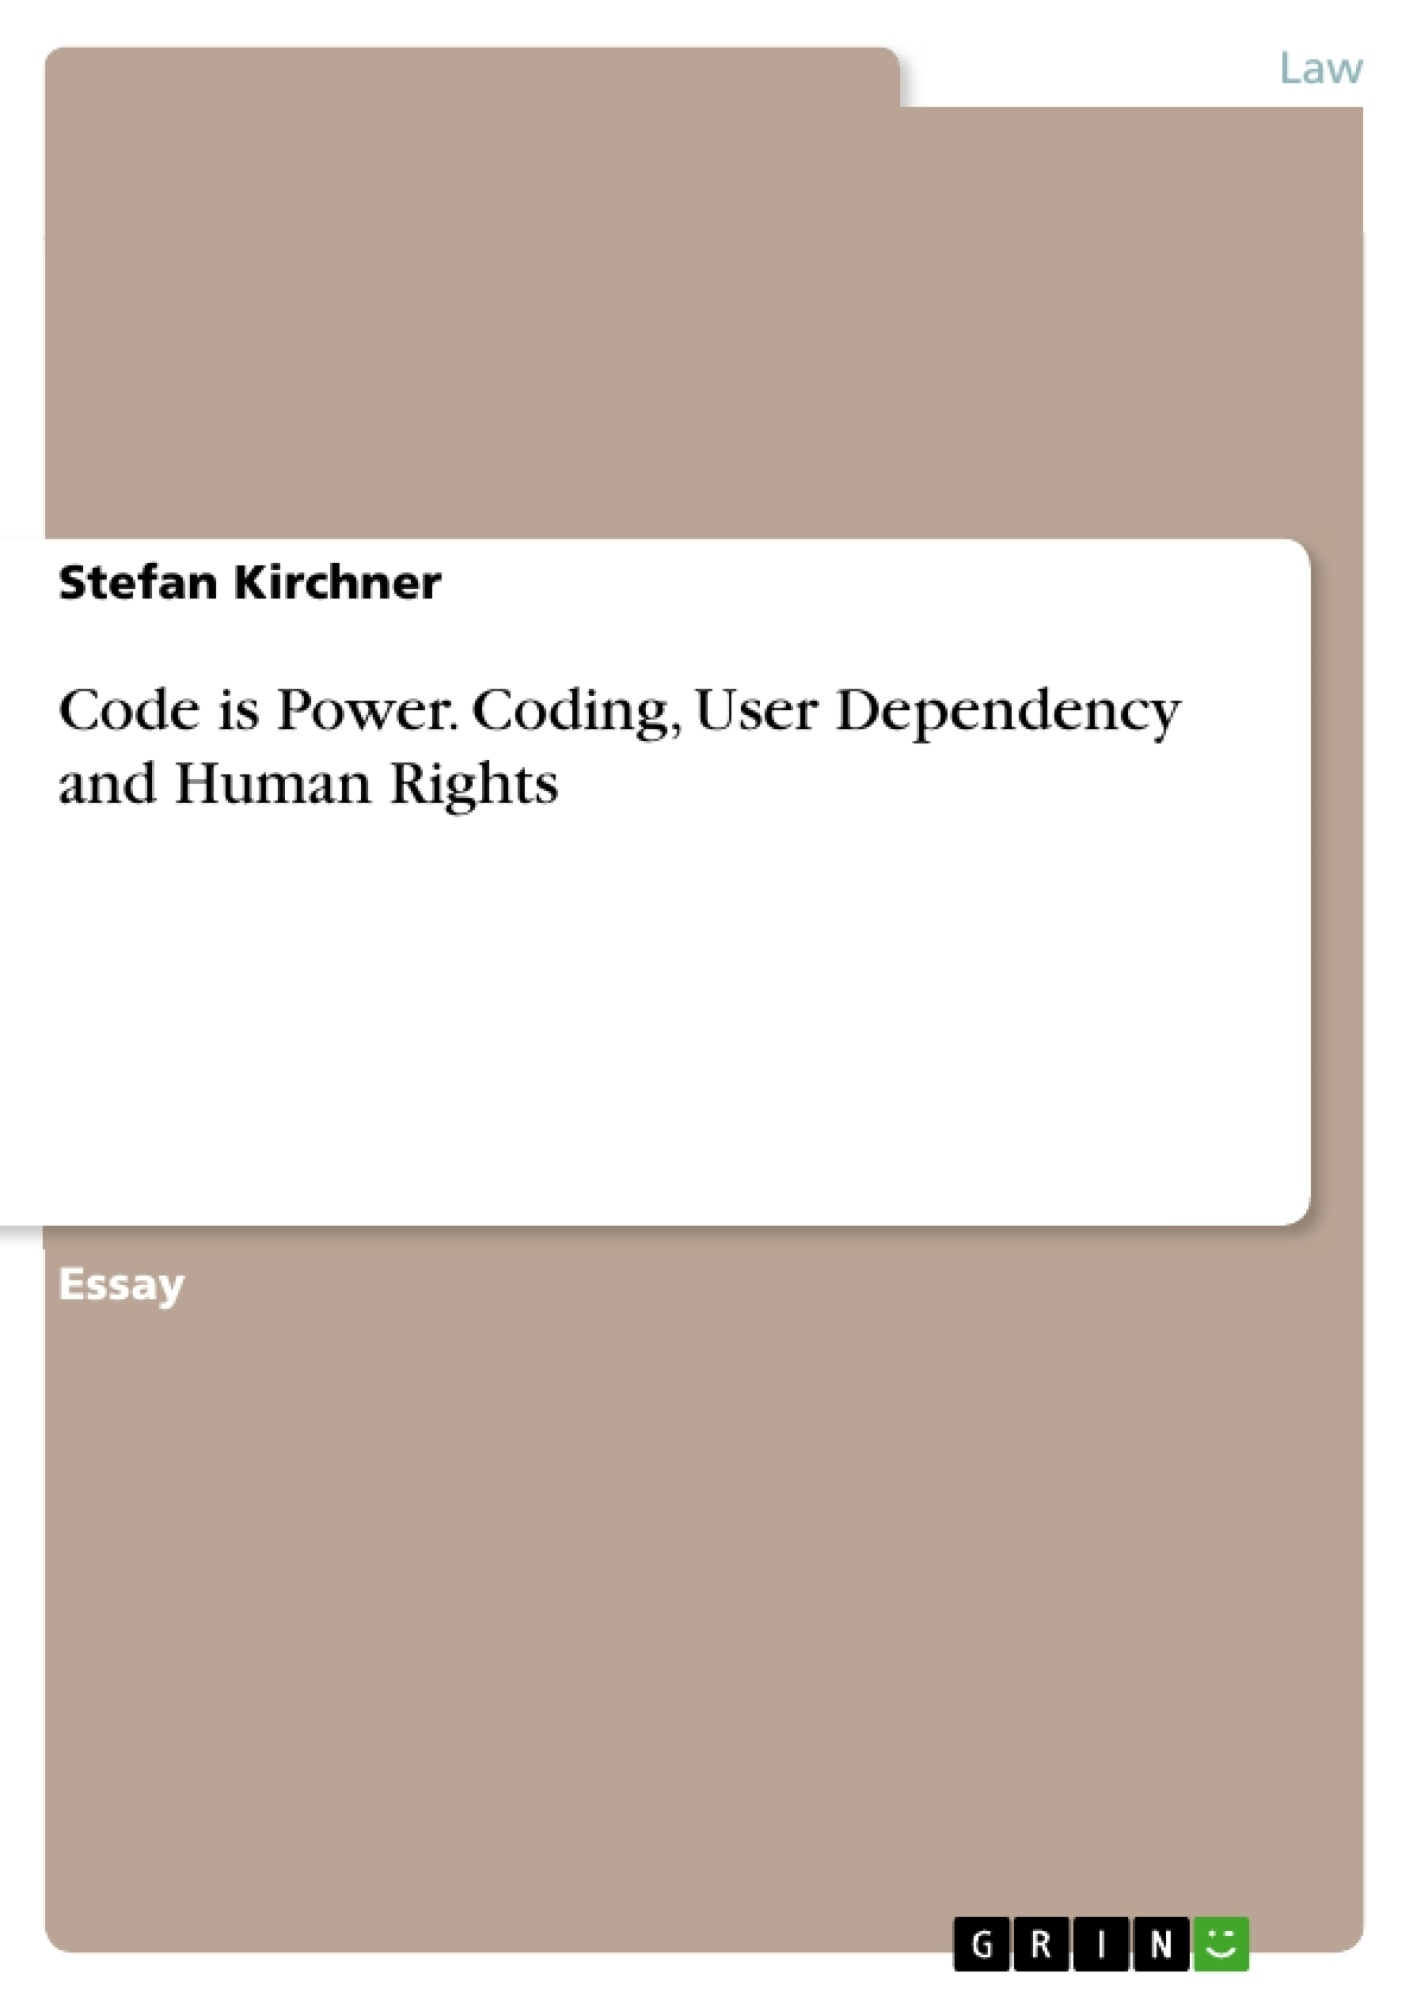 Title: Code is Power. Coding, User Dependency and Human Rights